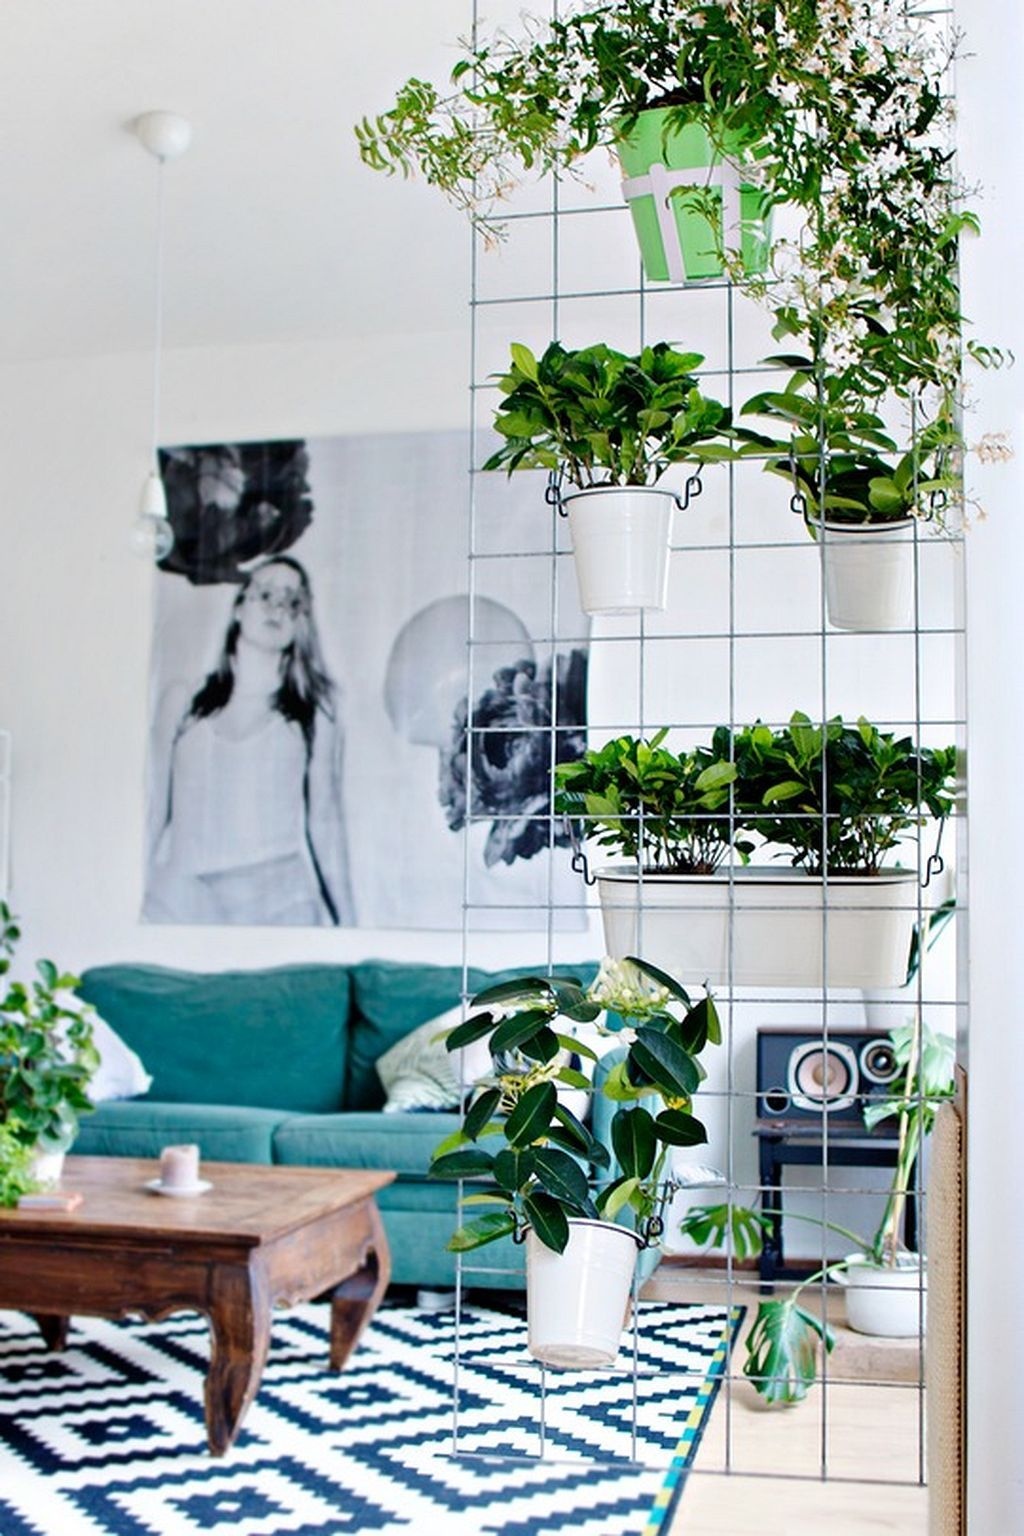 Room divider ideas with potted plants